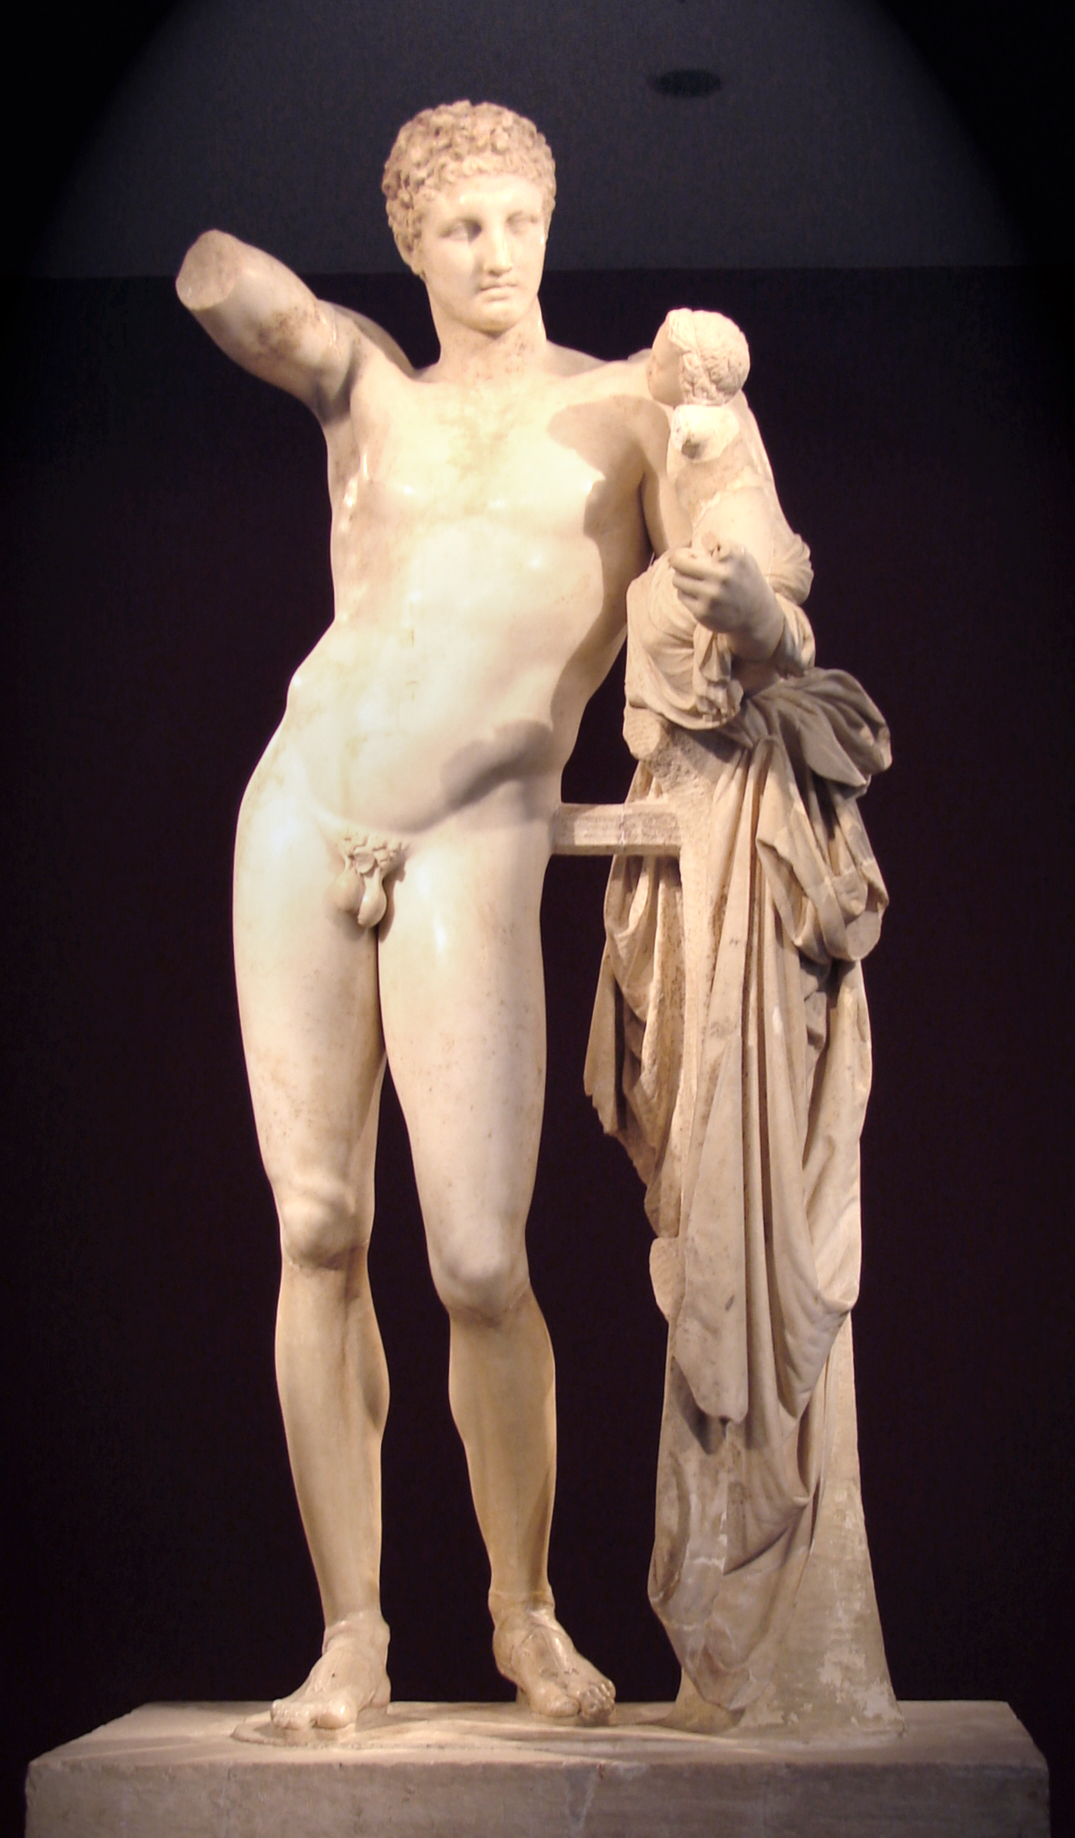 Hermes and the Infant Dionysos